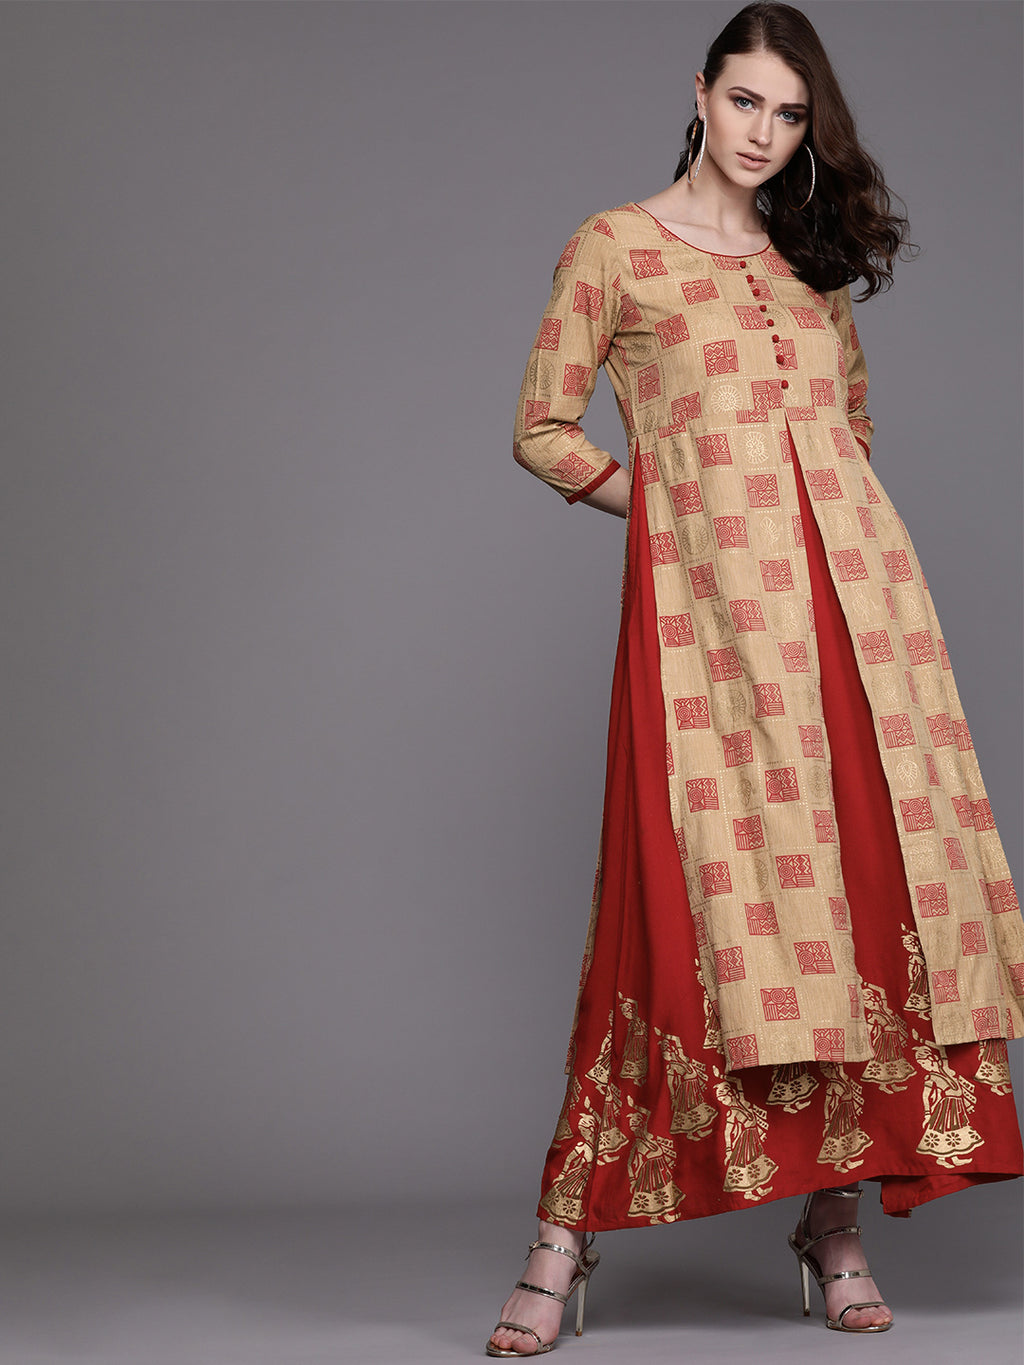 Red & Beige Layered Printed Maxi Dress (Fully Stitched)